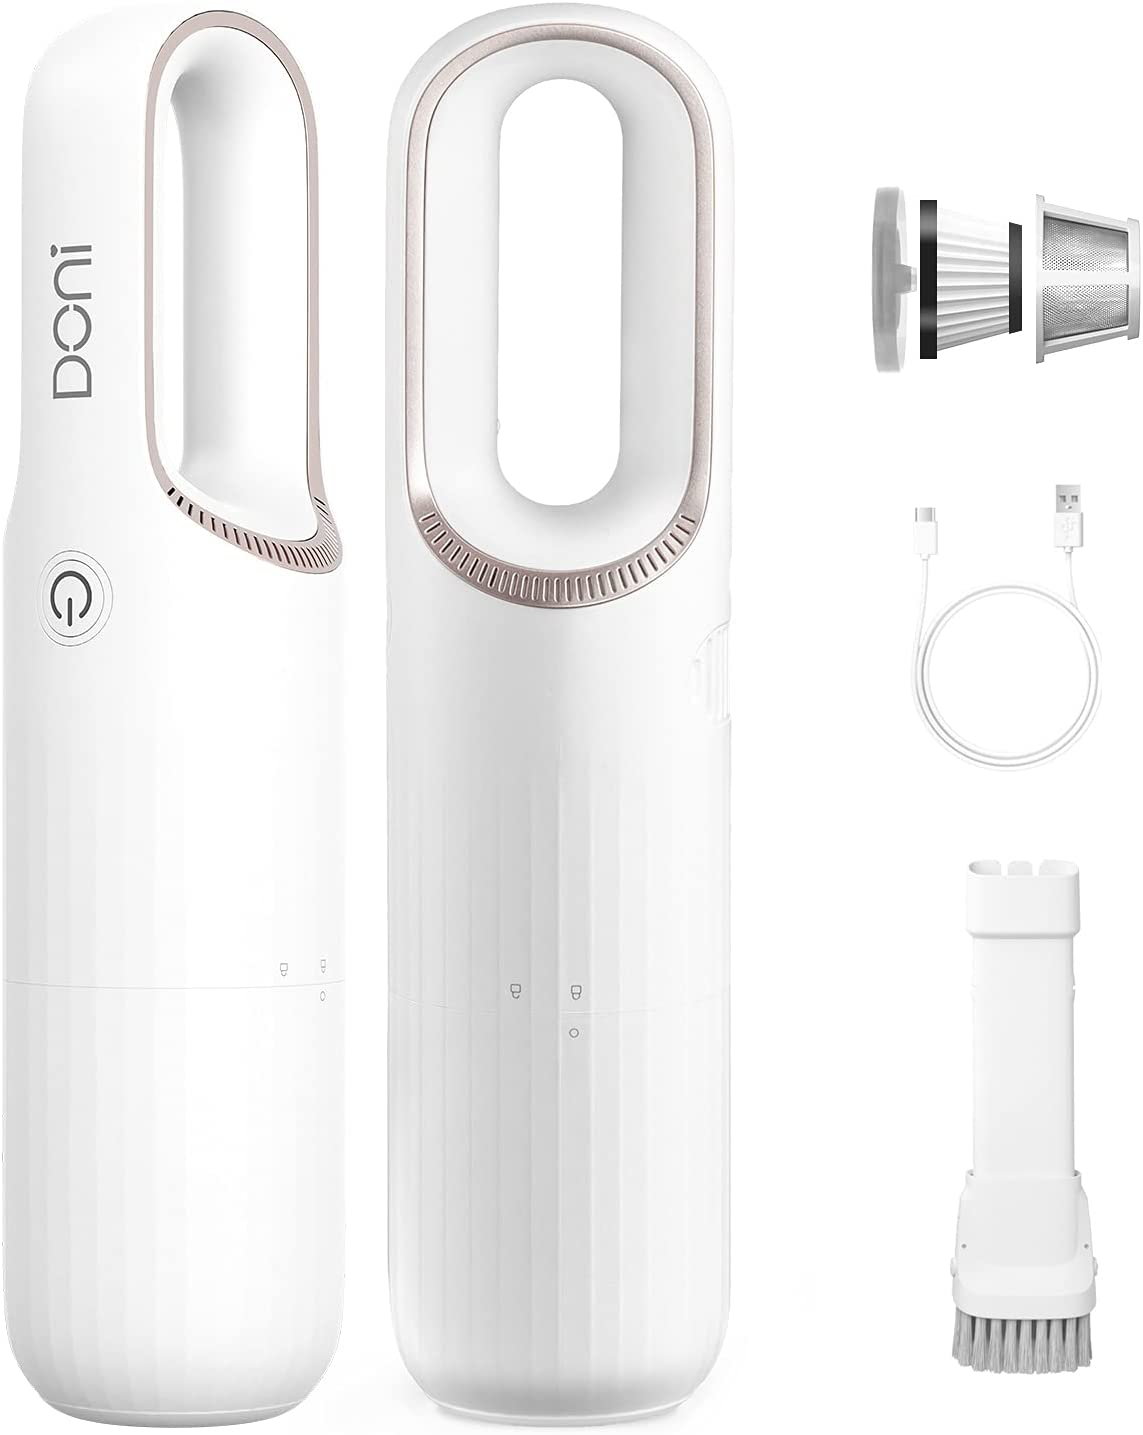 Handheld Vacuum Cordless Fast Portable Charging Cleaner price Max 87% OFF P